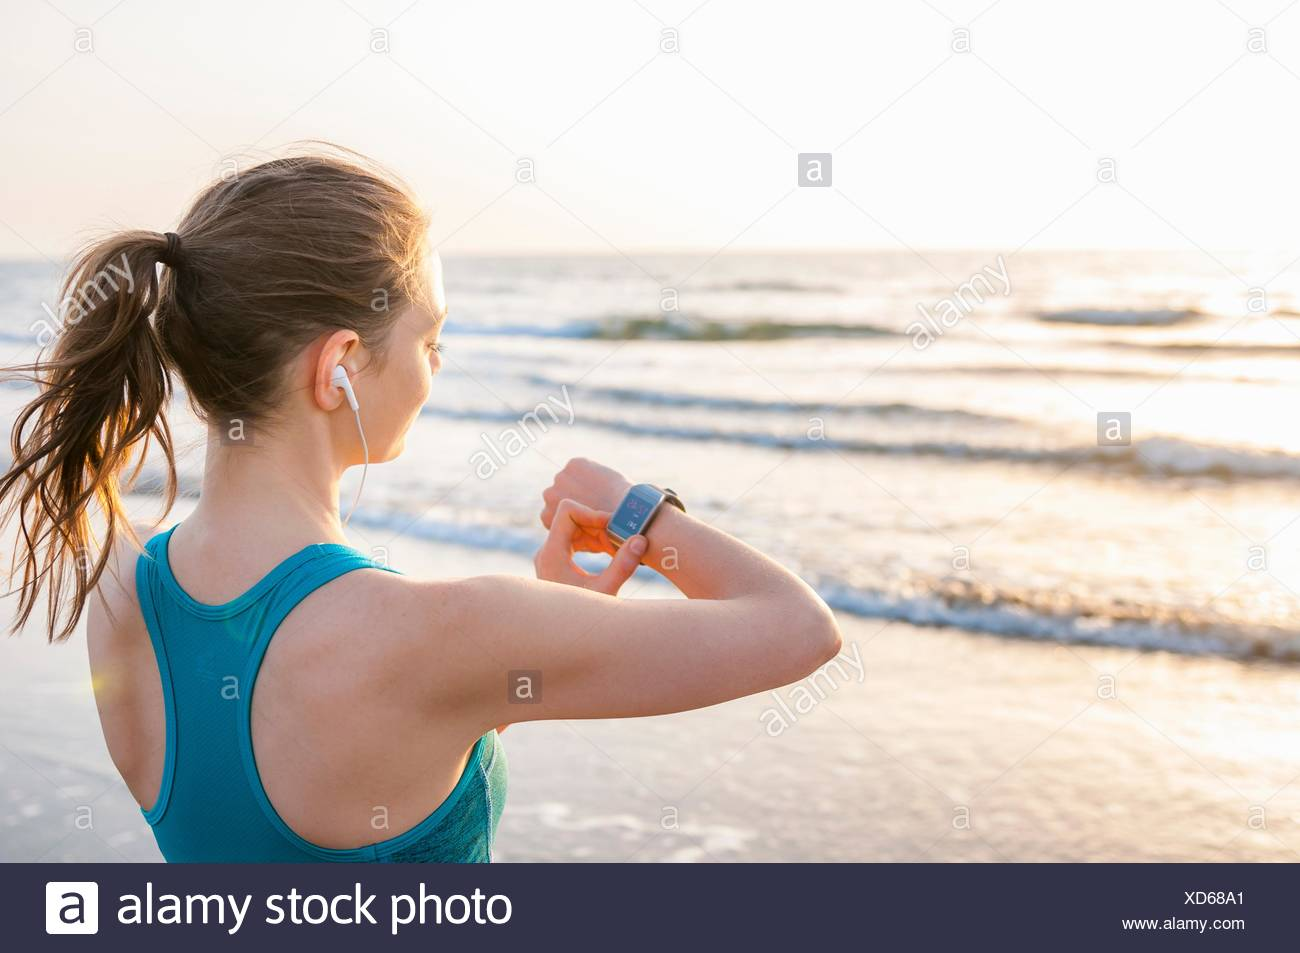 Over the shoulder view of mid adult woman by ocean wearing earbuds looking at wrist watch - Stock Image